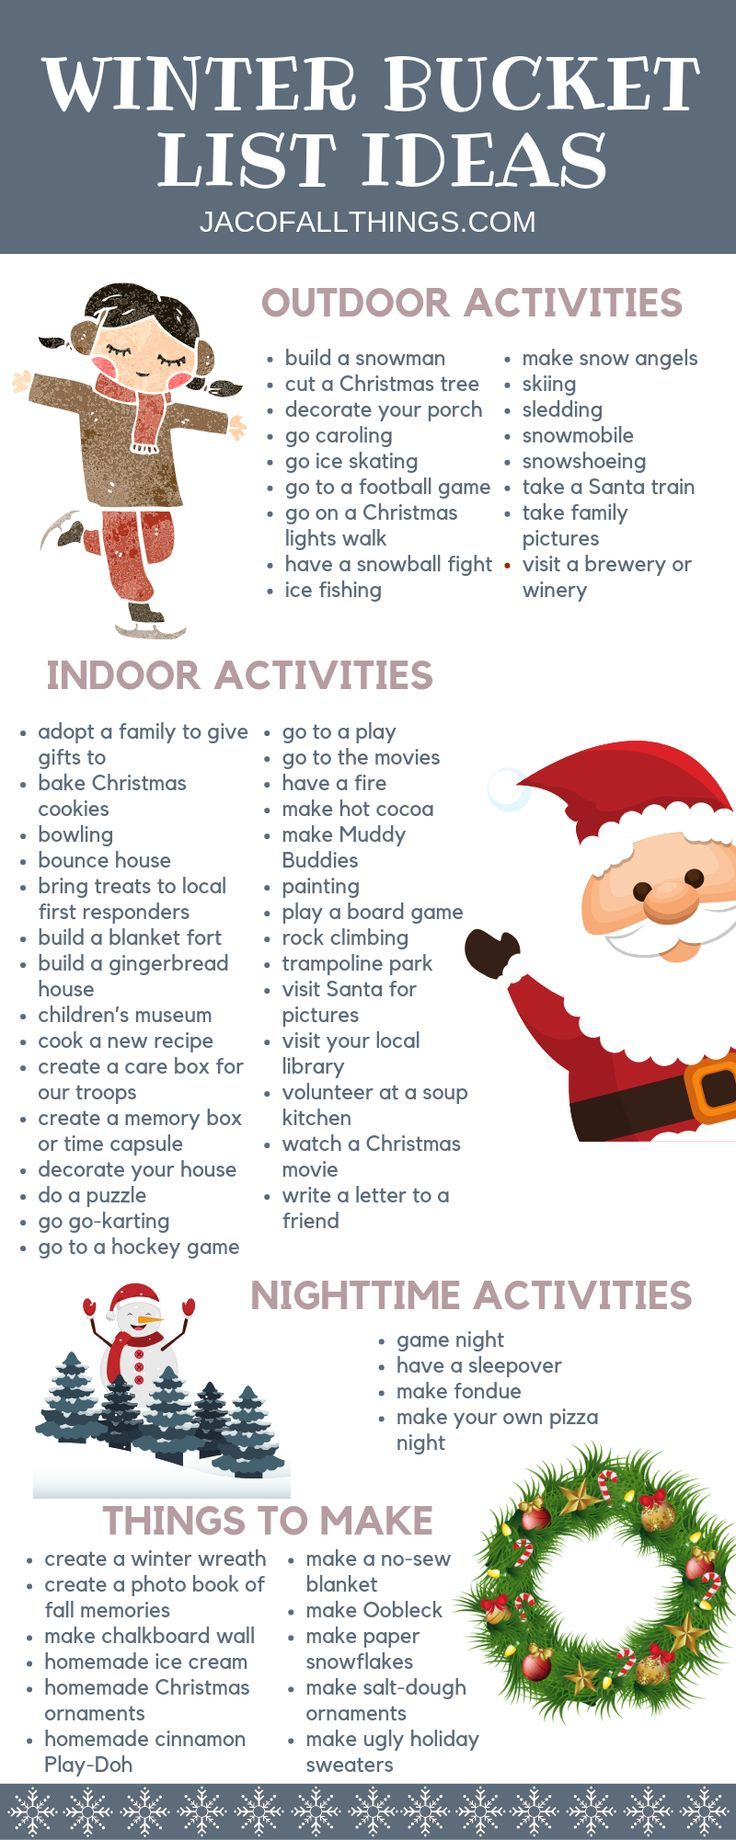 Photo of Winter Bucket List Ideas and Activities